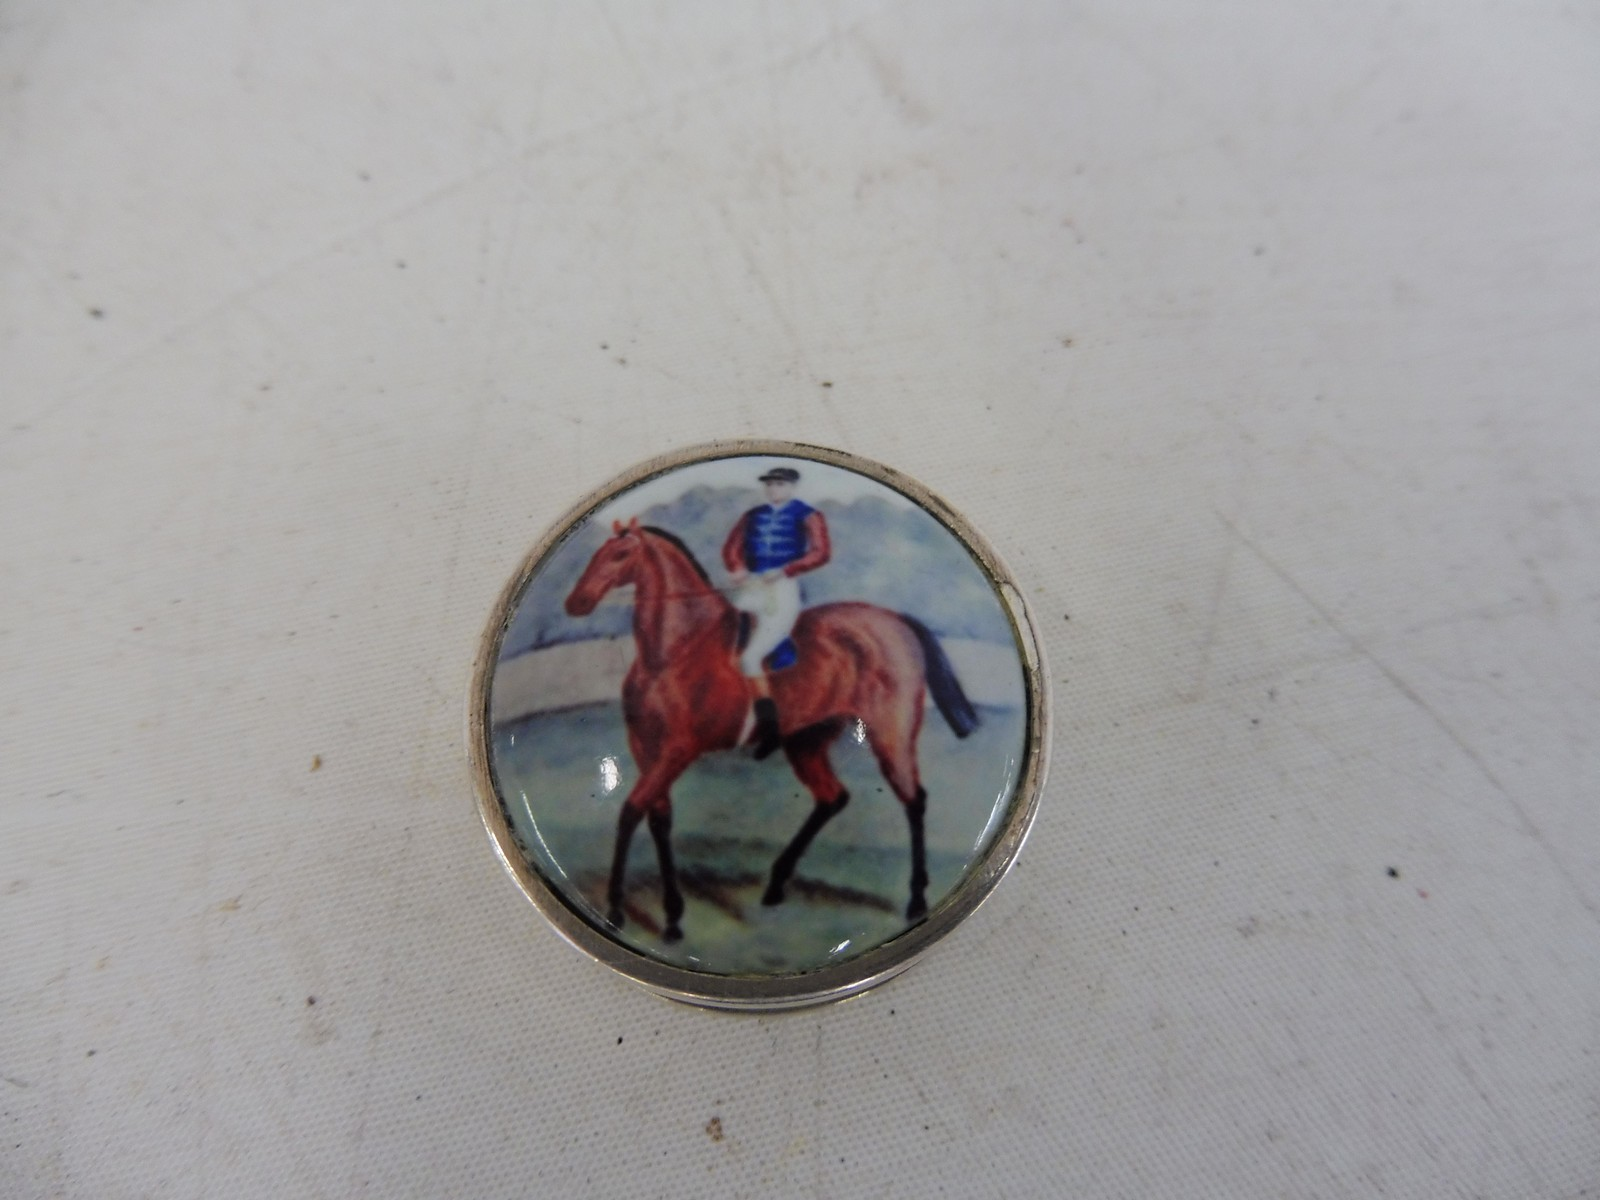 Lot 58 - A circular silver and enamel topped pill pot, the lid decorated with a jockey cantering on his